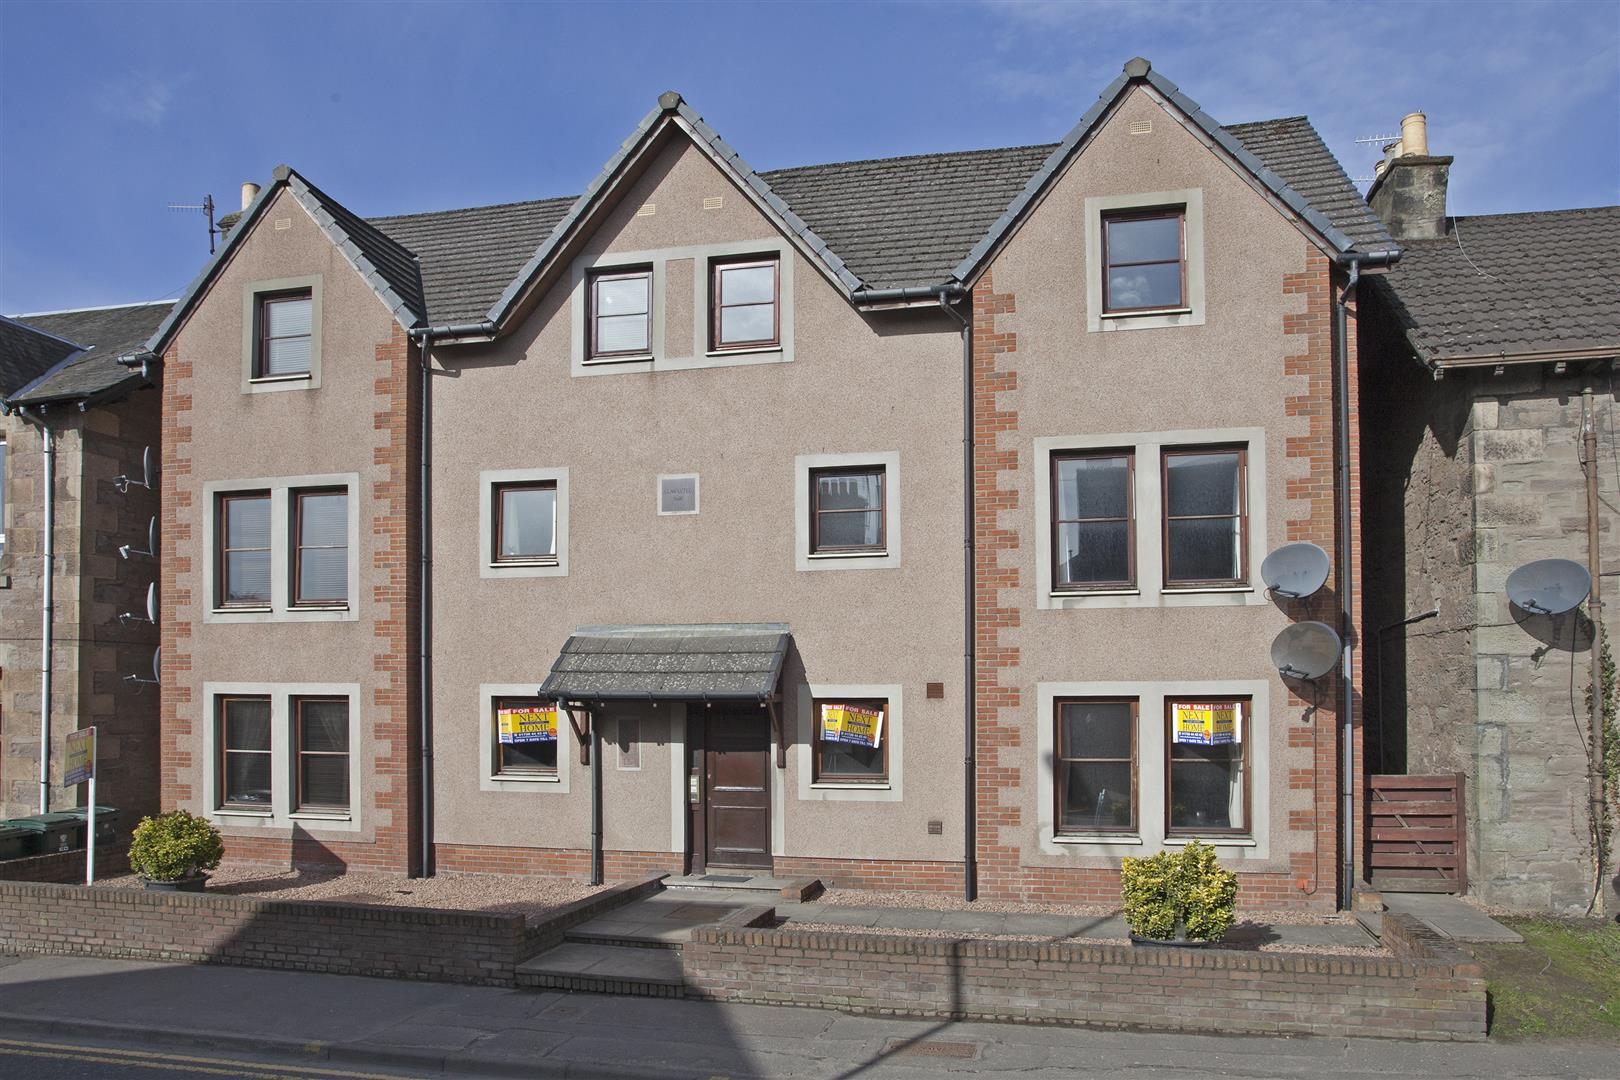 Flat B, Priory Court, Priory Place, Perth, Perthshire, PH2 0EU, UK